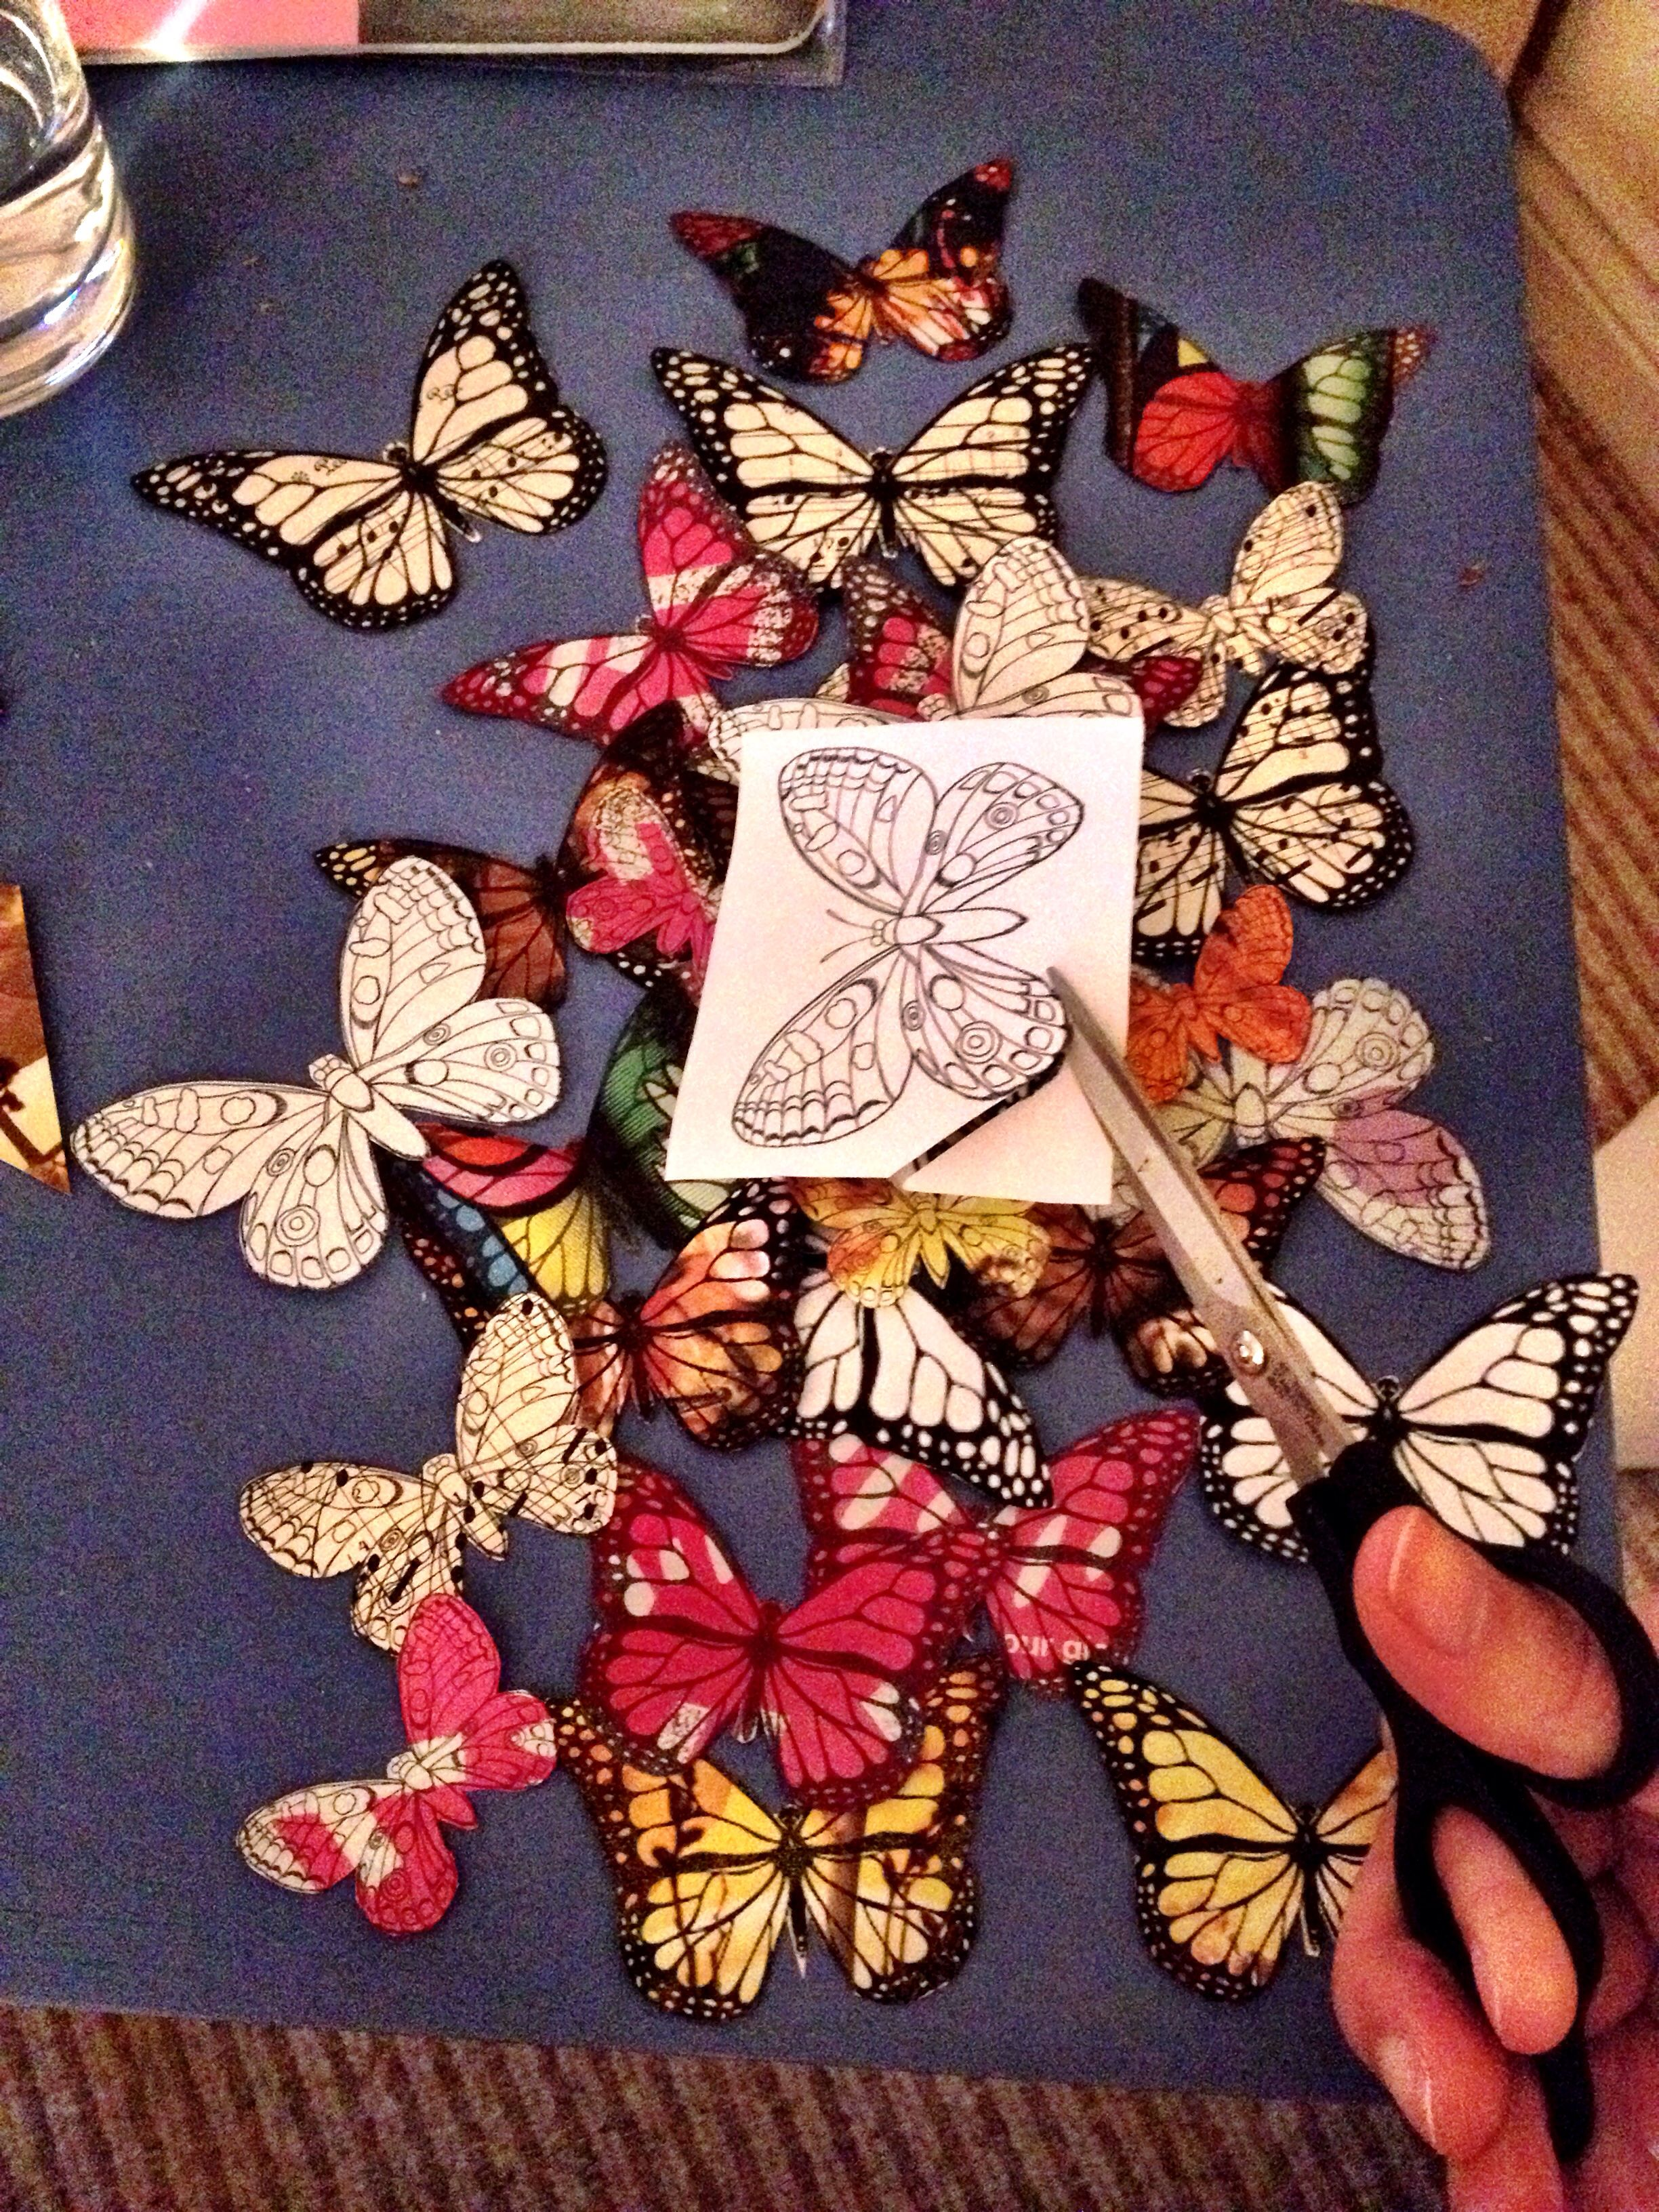 Work in progress...going through a butterfly face (in case you didn't noticed...)